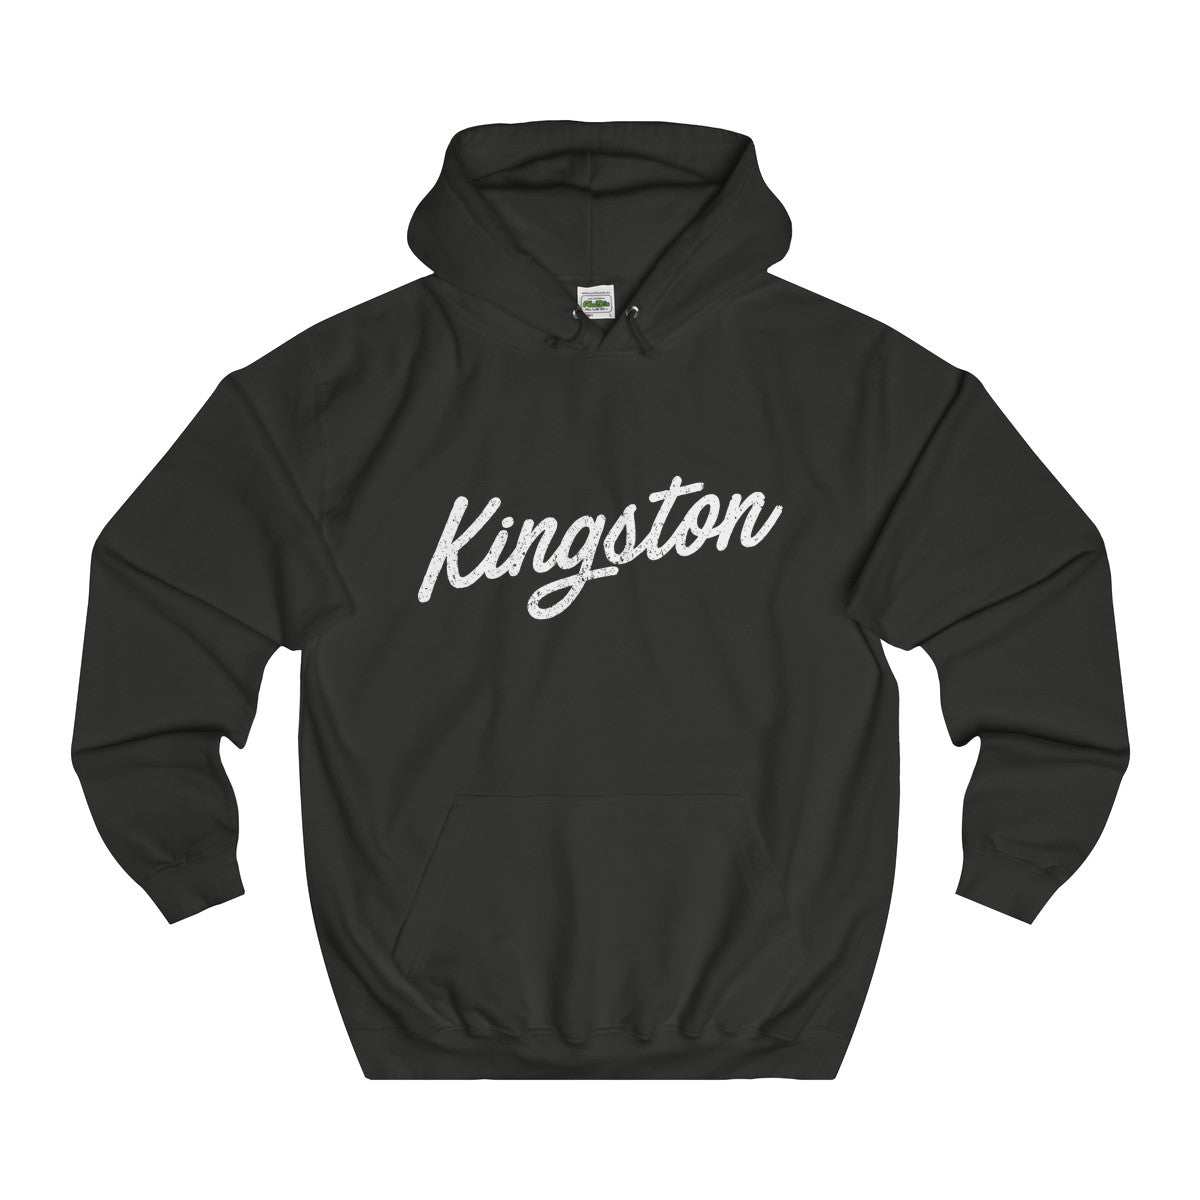 Kingston Scripted Hoodie